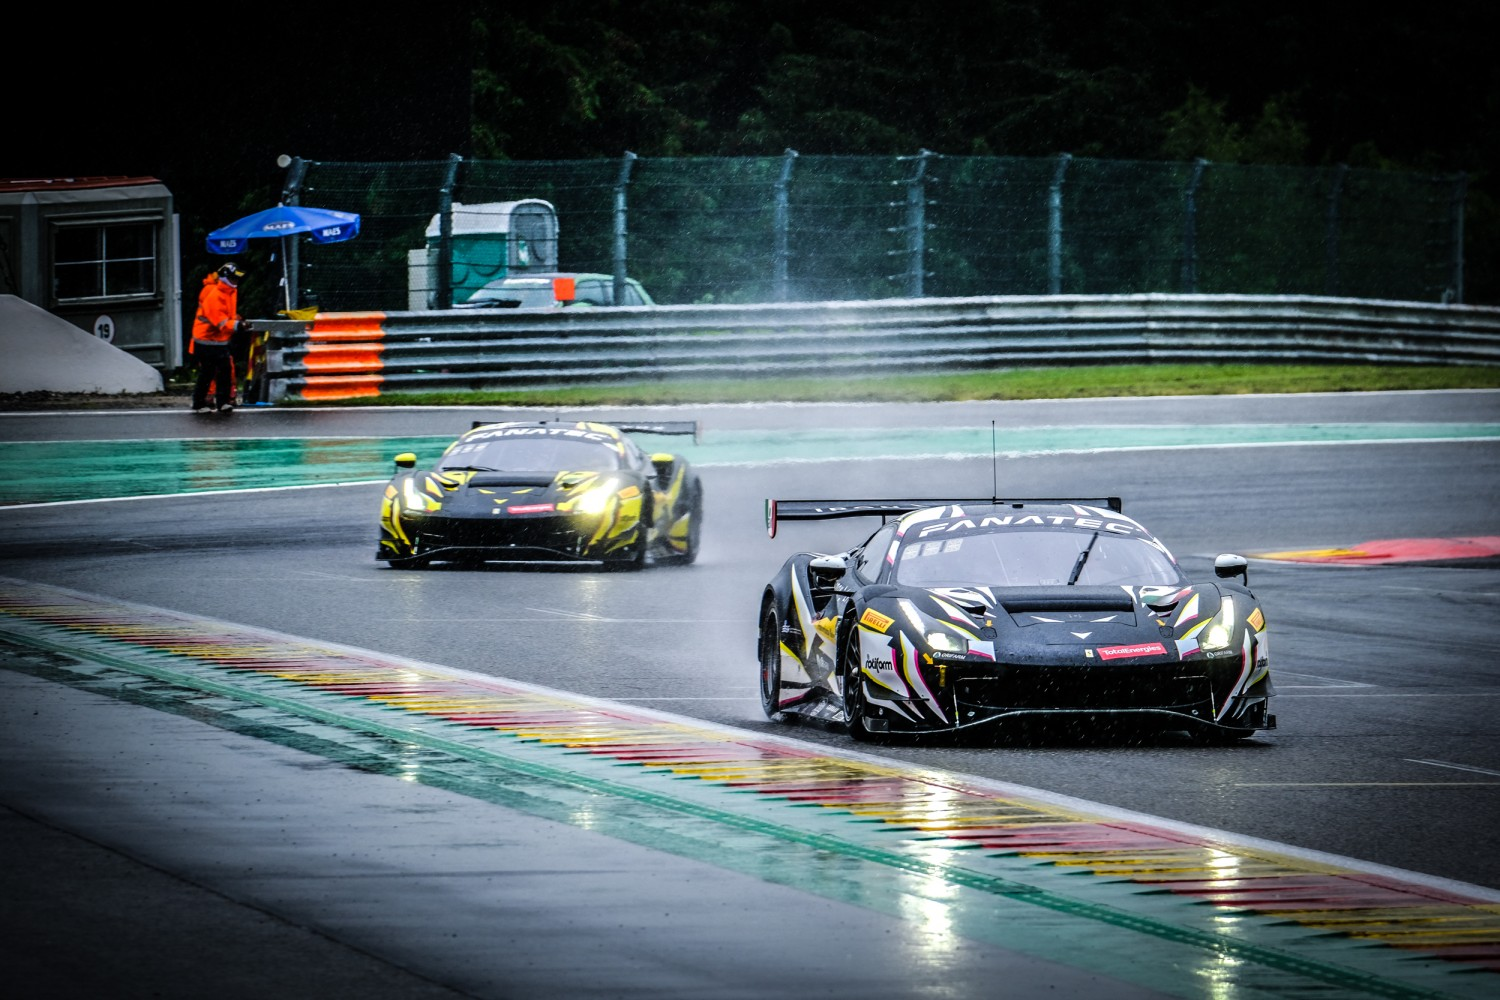 Iron Lynx Ferrari tops rain-hit morning session as test days get underway at Spa-Francorchamps